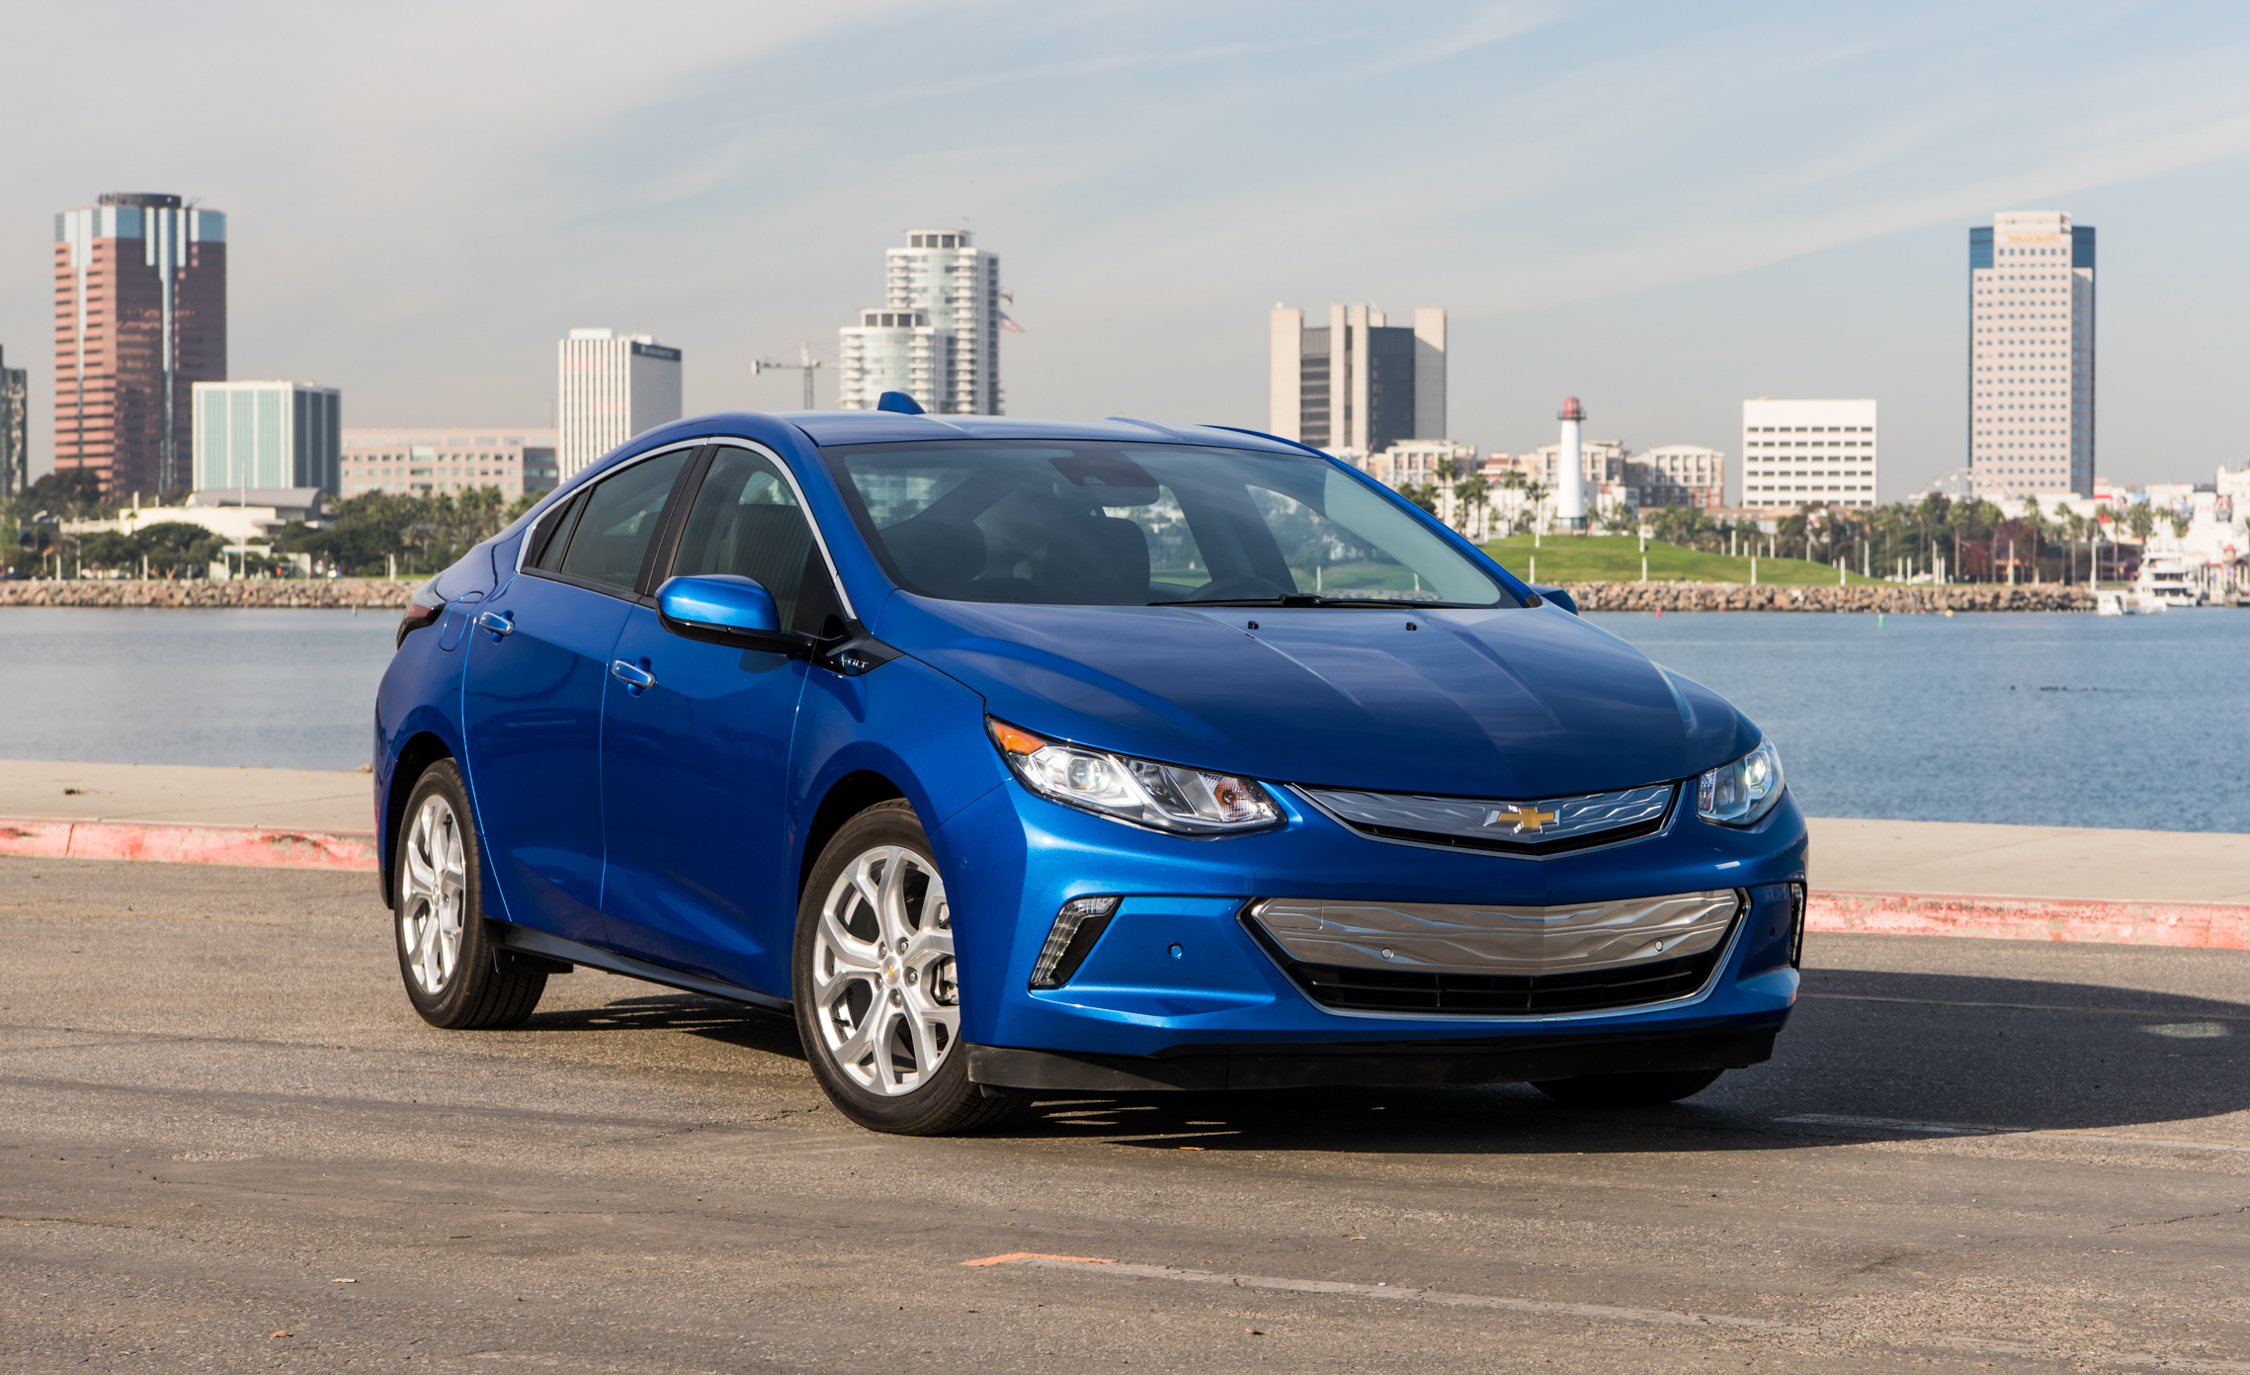 2017 Chevrolet Volt Exterior (Photo 2 of 16)